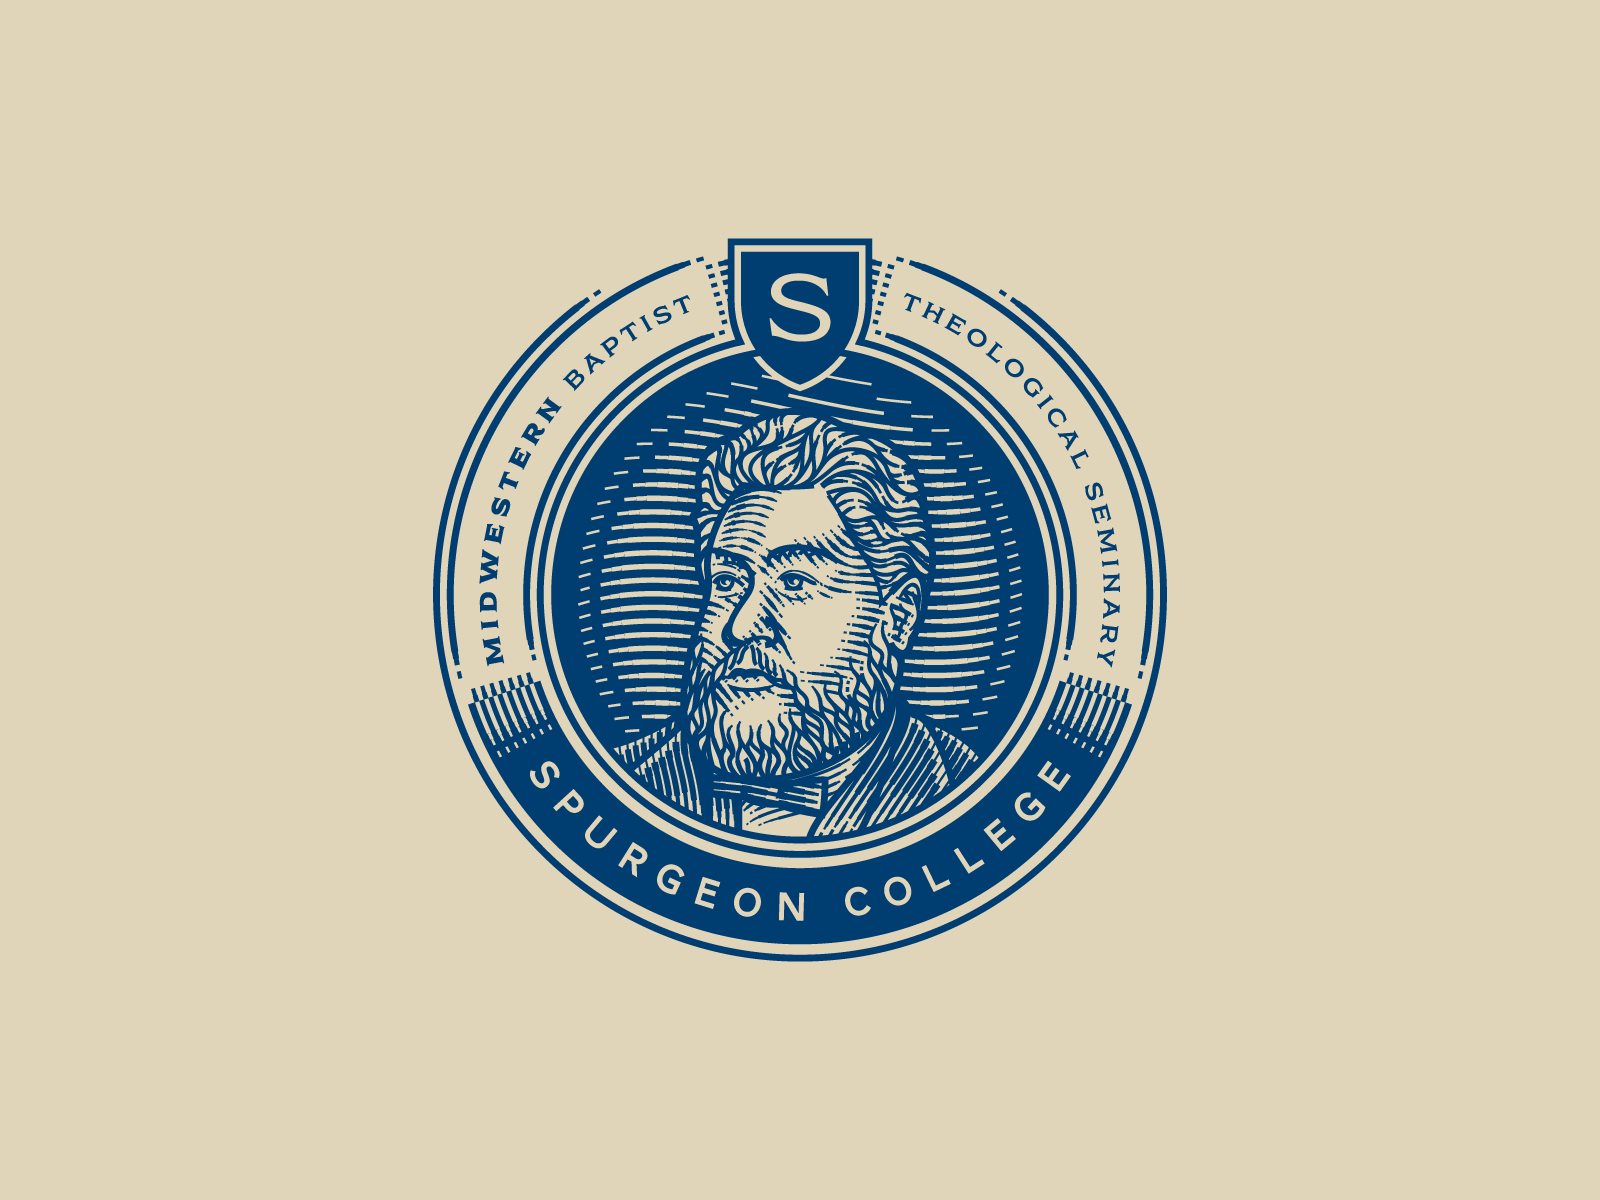 Spurgeon College etching portrait peter voth design engraving icon illustration vector badge